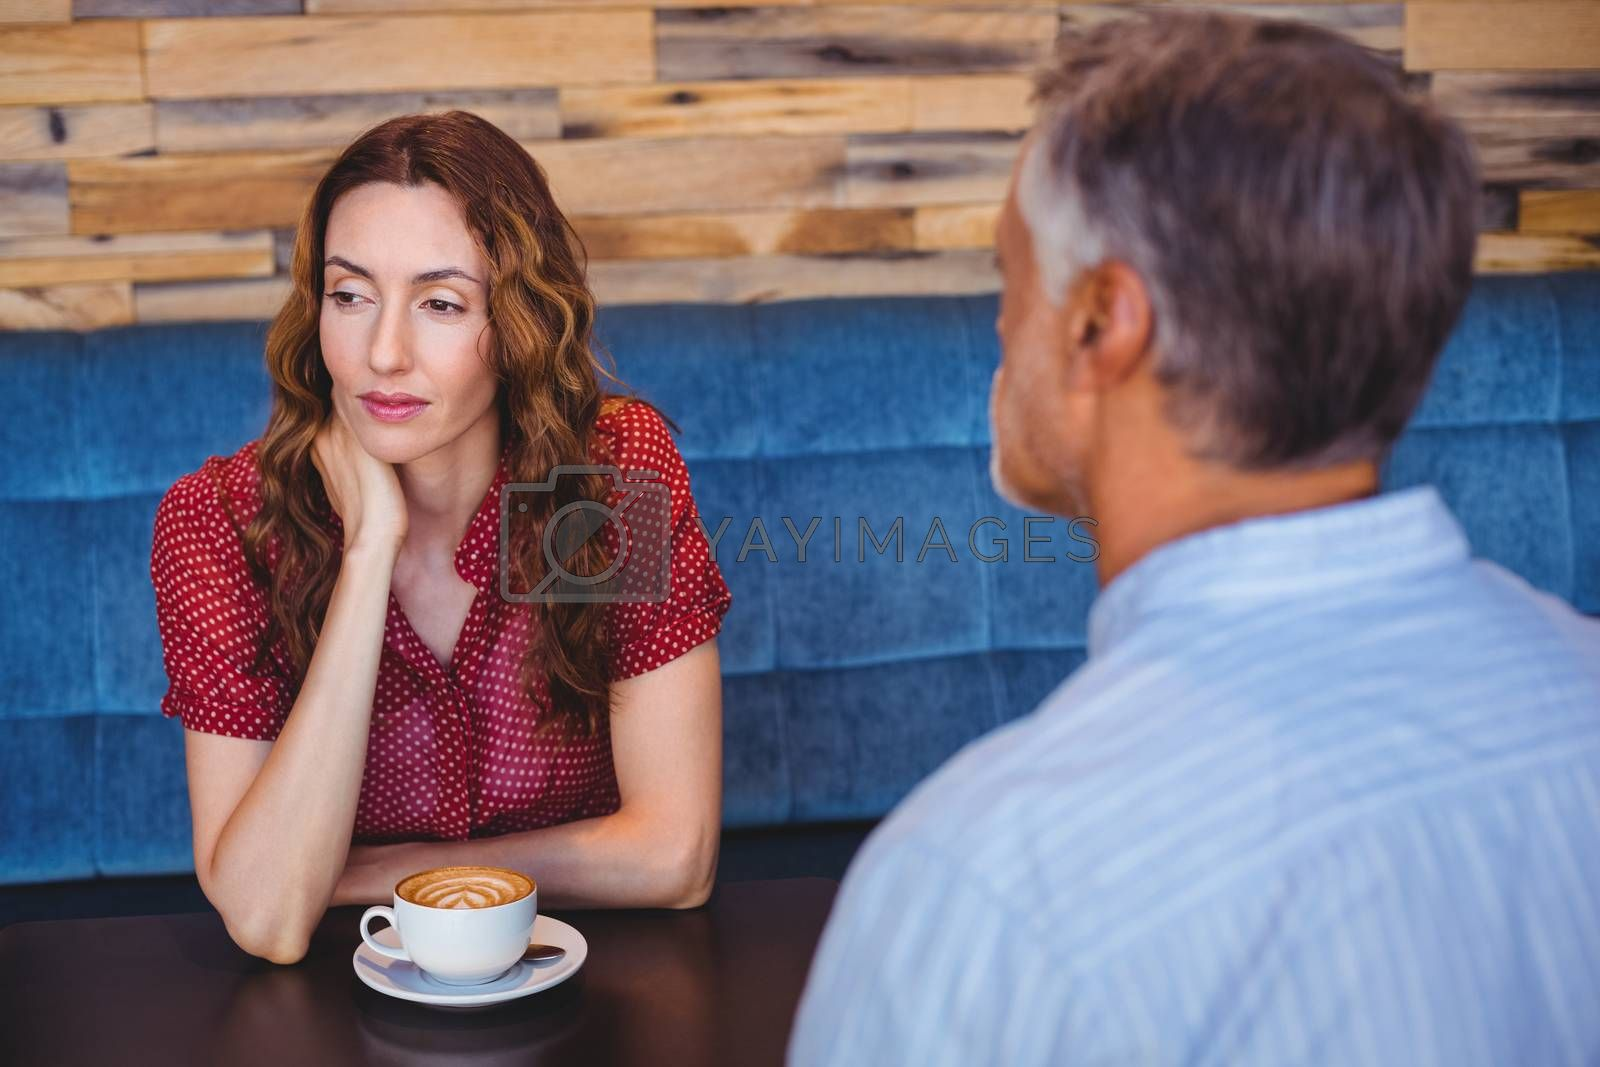 Royalty free image of bored couple having coffee together  by Wavebreakmedia